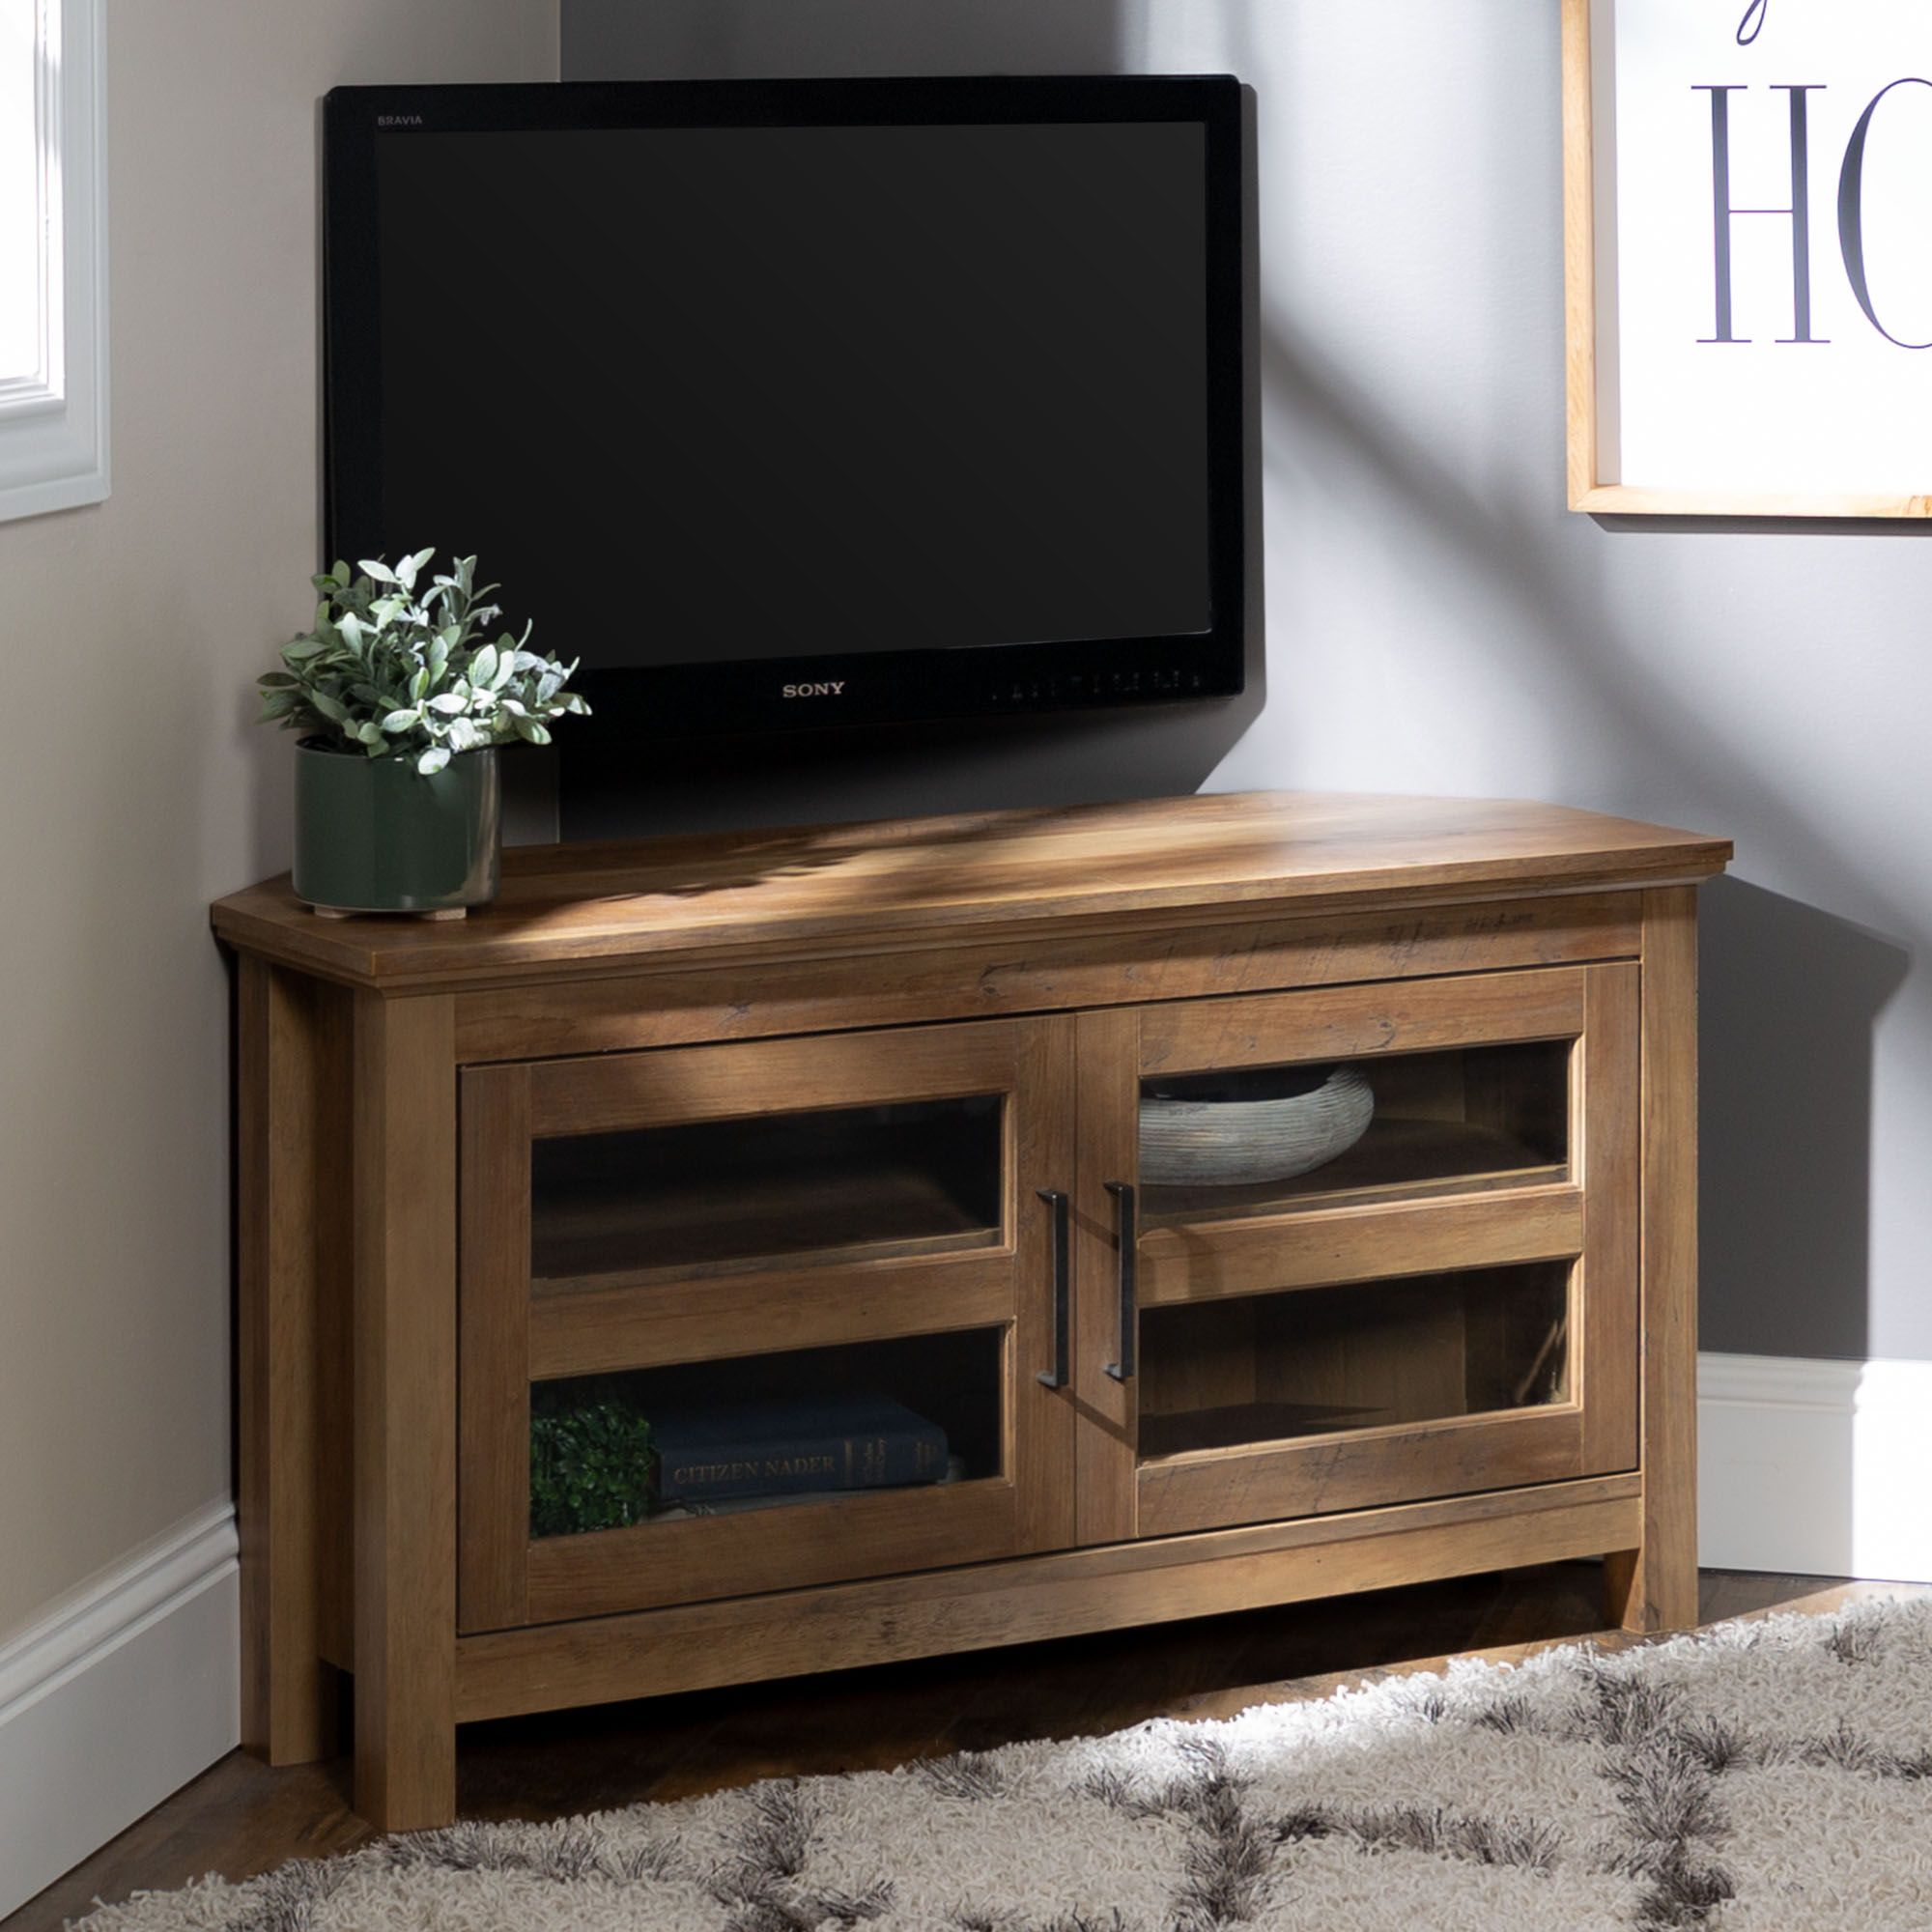 Amazon Com Simpli Home Axchol005 Artisan Collection 54 Inch Width By 36 Inch Height Tv Stand Medi Tall Tv Stands Modern Furniture Living Room Tv Media Stands